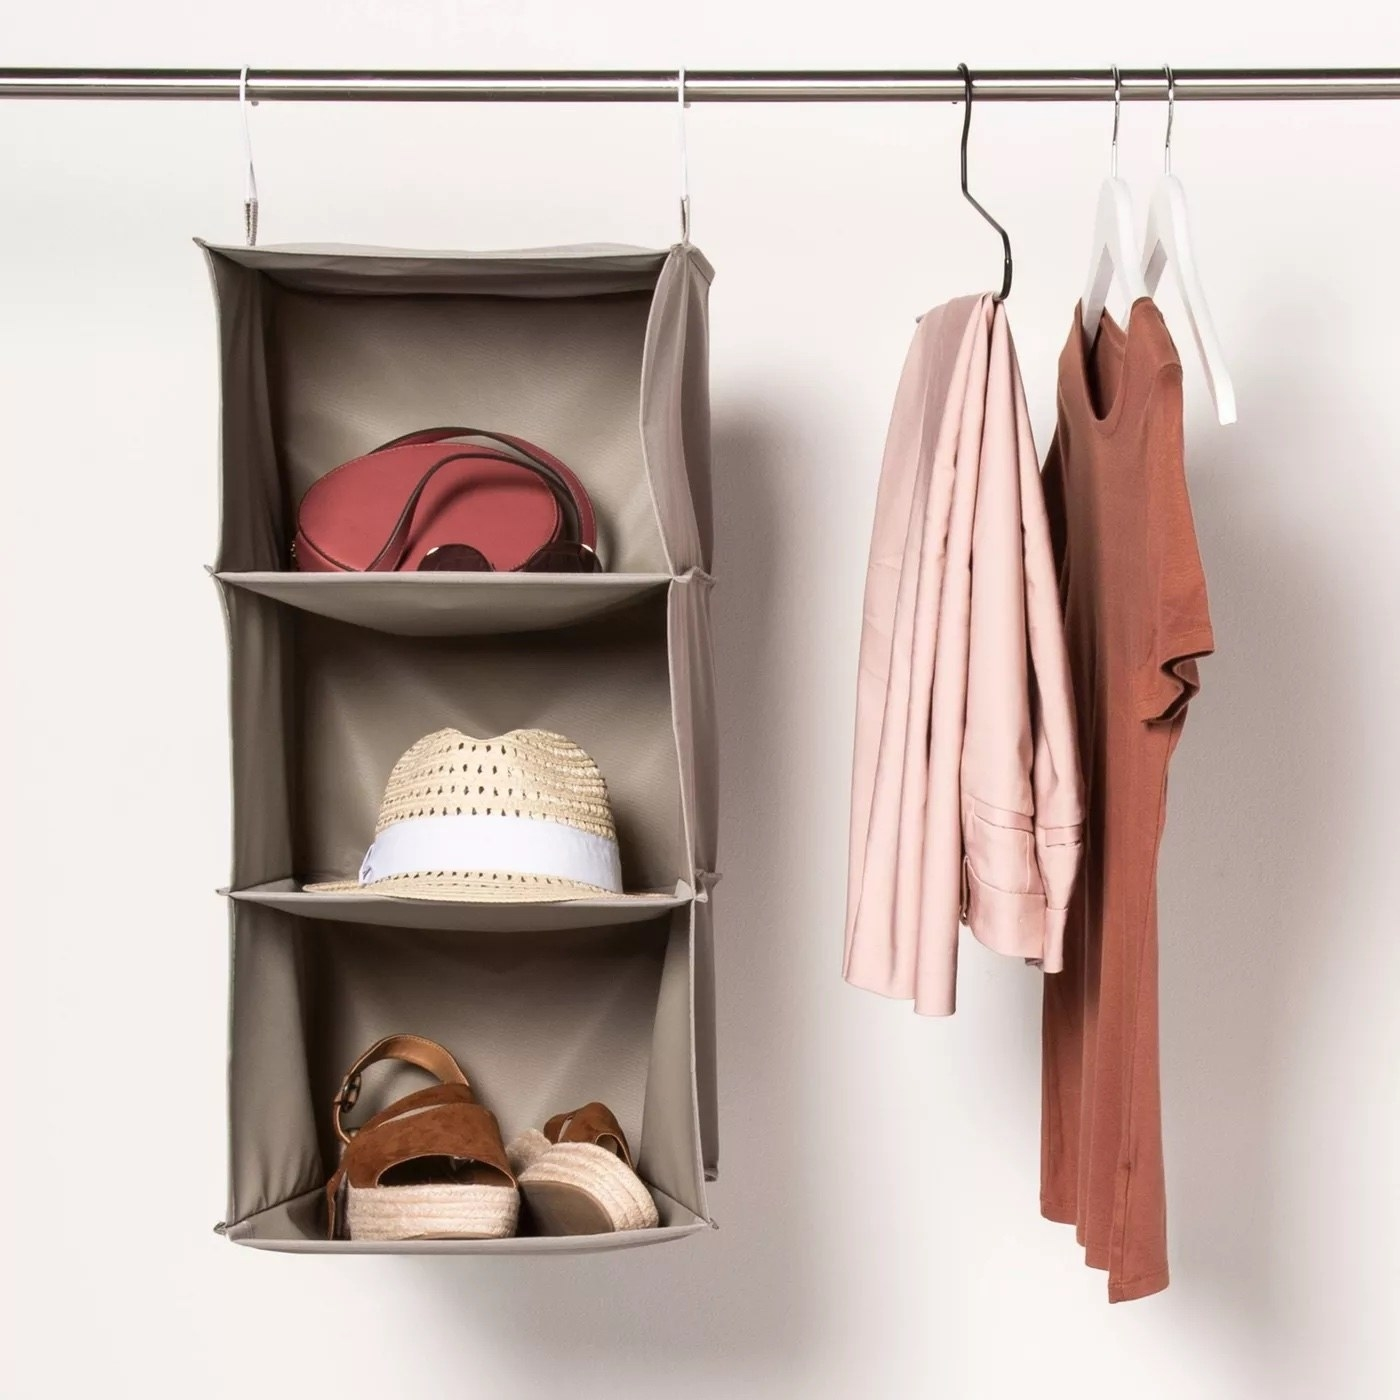 The hanging closet organizer with assorted items inside